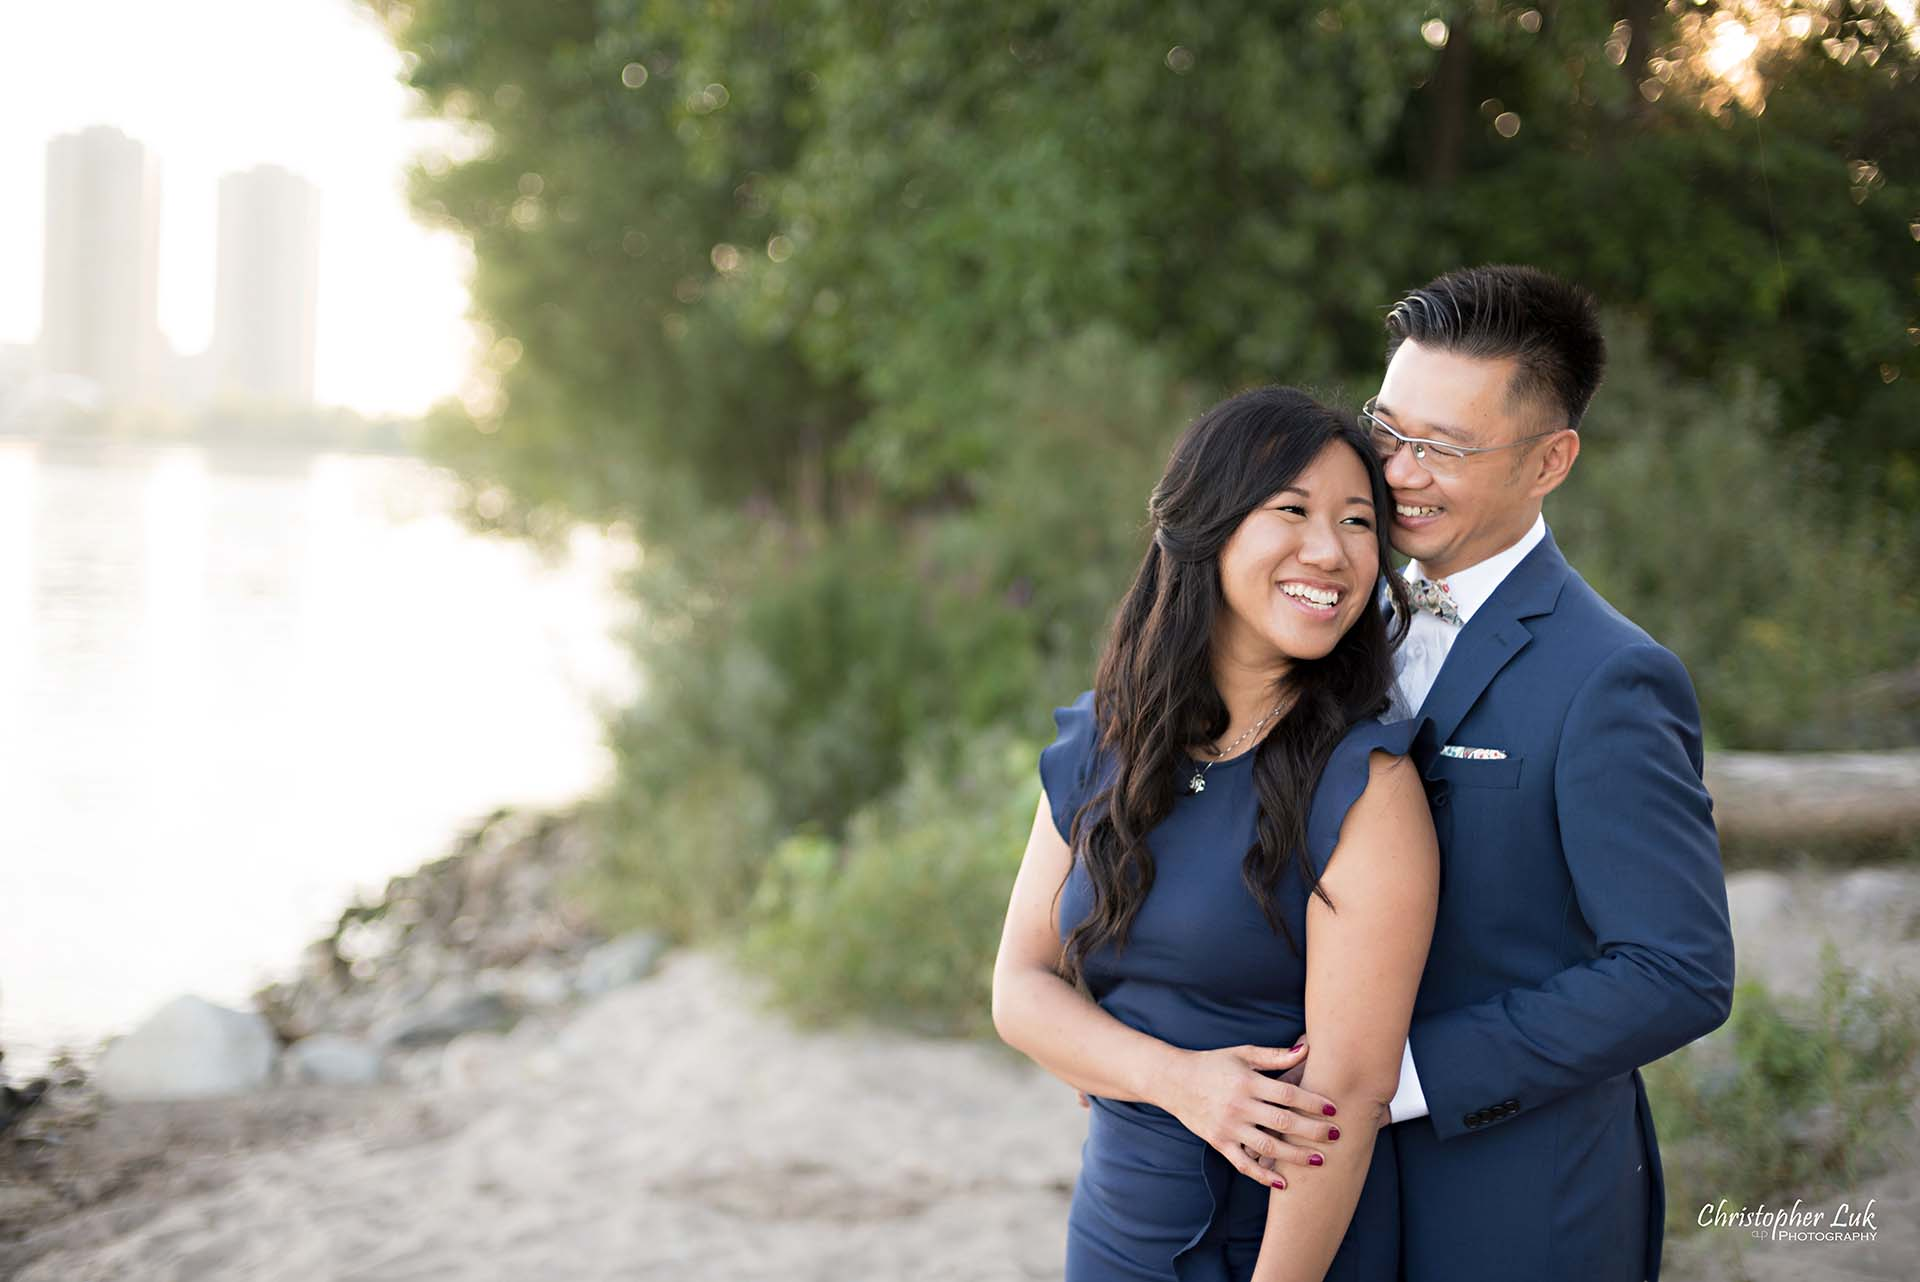 Clarise and Isaac's Engagement Session – Sunnyside Pavilion Boardwalk Beach Park – Toronto Wedding Photographer